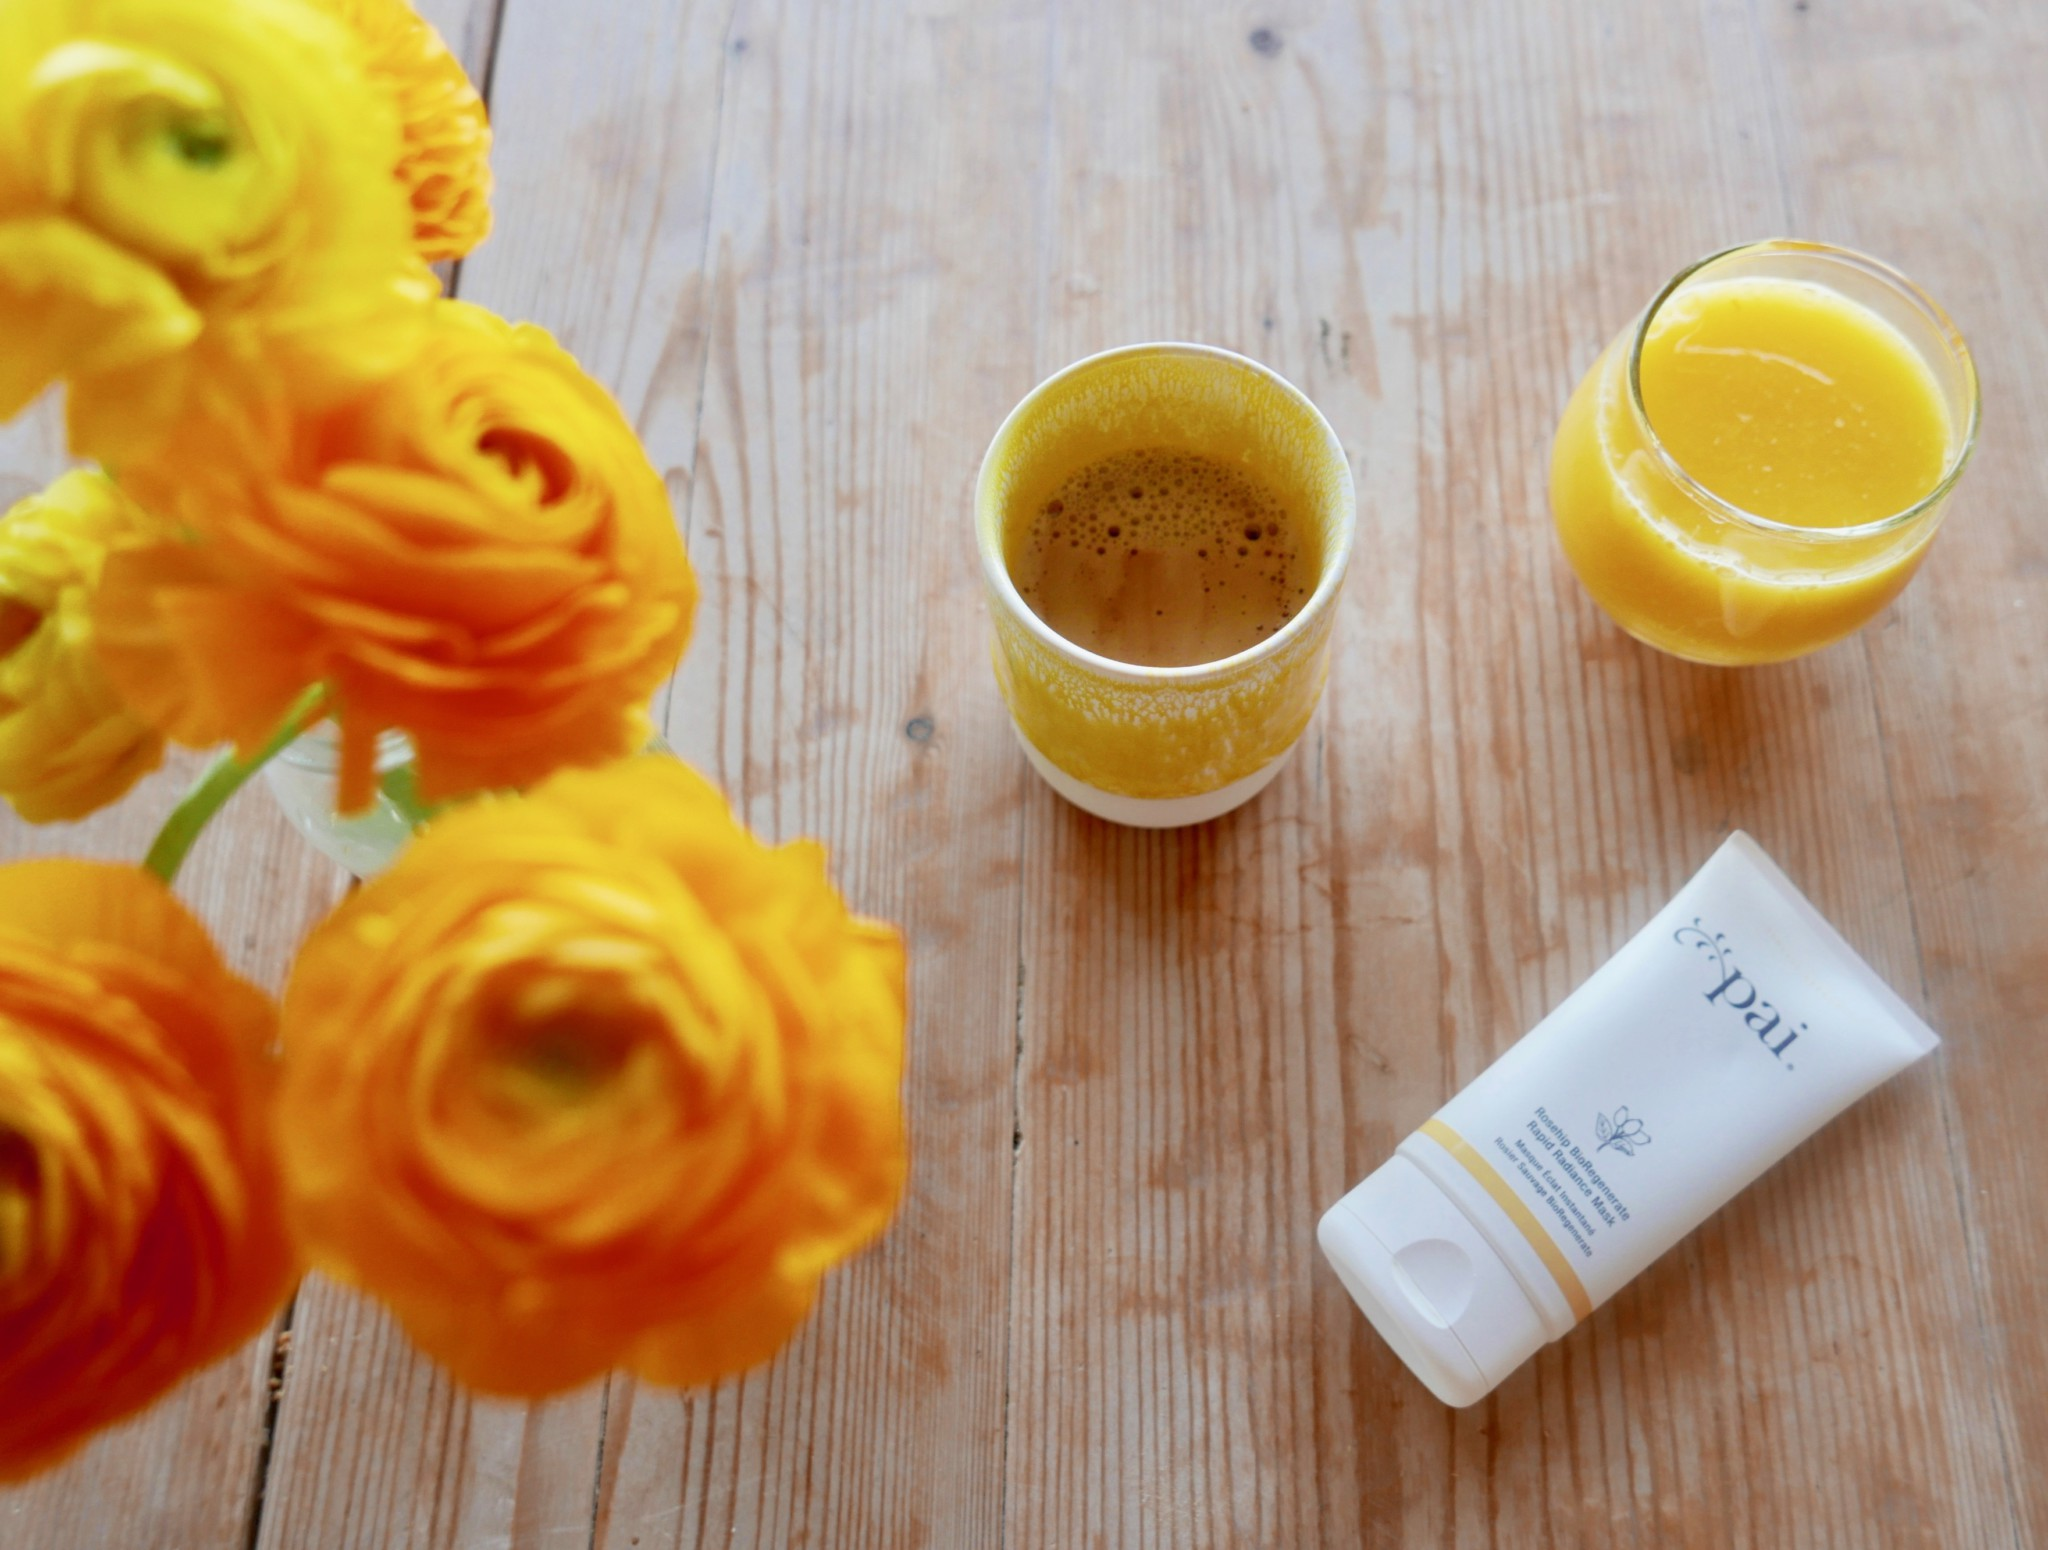 gult-er-kult-mellow-yellow-pai-skincare-coffee